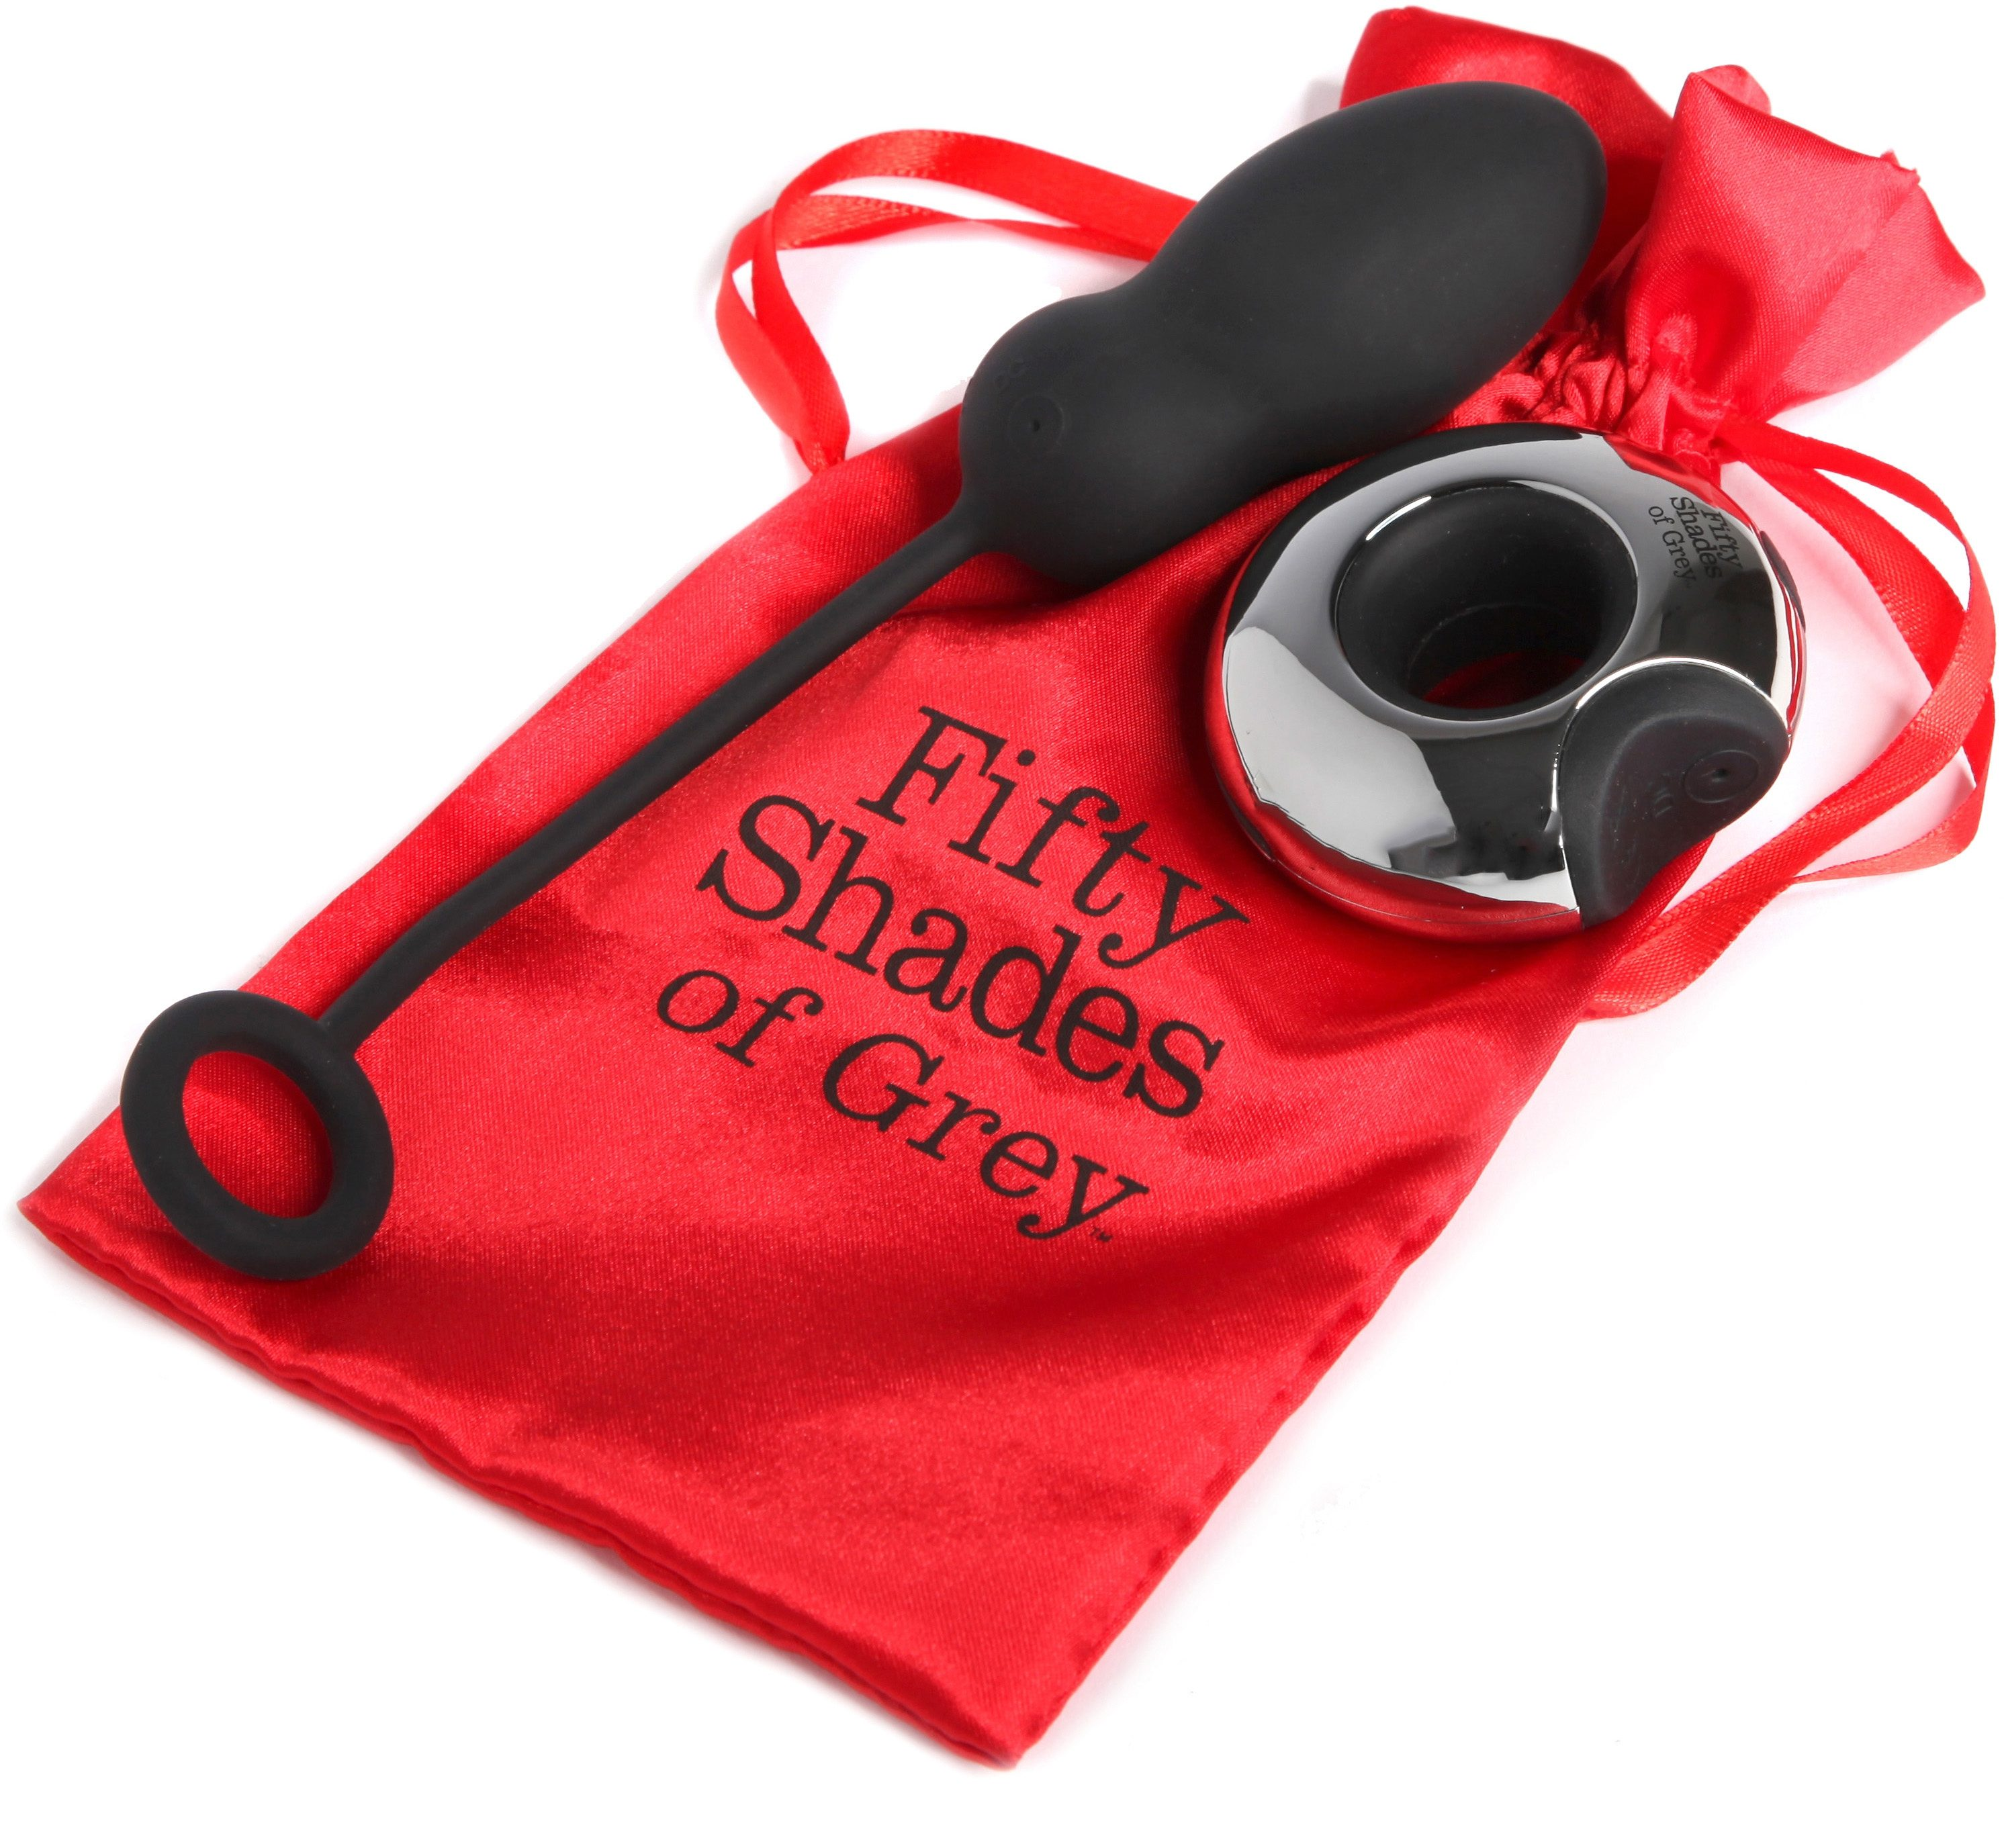 Shades of Grey Vibro-Ei »Relentless Vibrations«, mit Funk-Fernbedienung